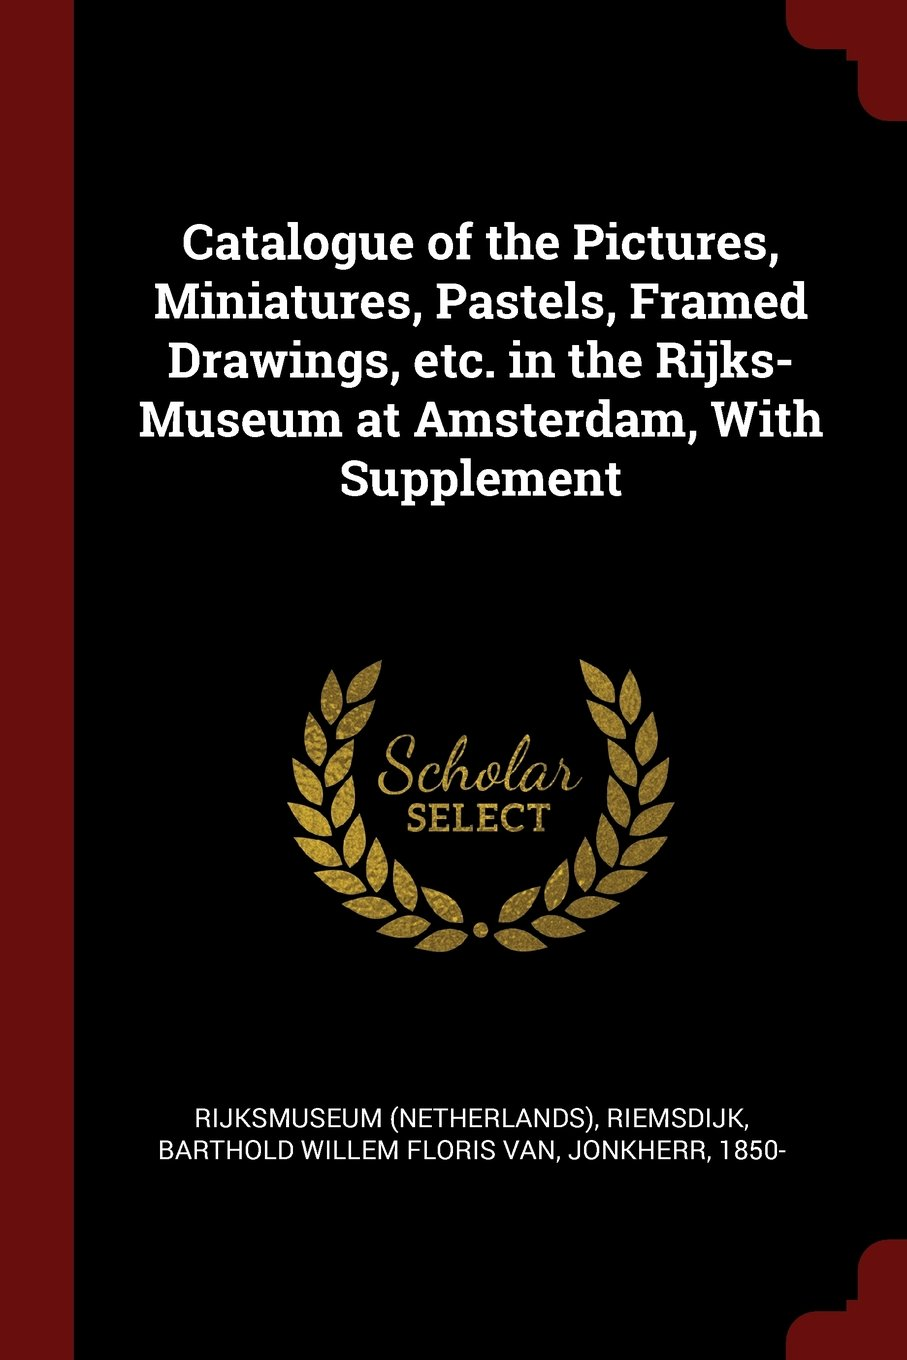 Catalogue of the Pictures, Miniatures, Pastels, Framed Drawings, etc. in the Rijks-Museum at Amsterdam, With Supplement pdf